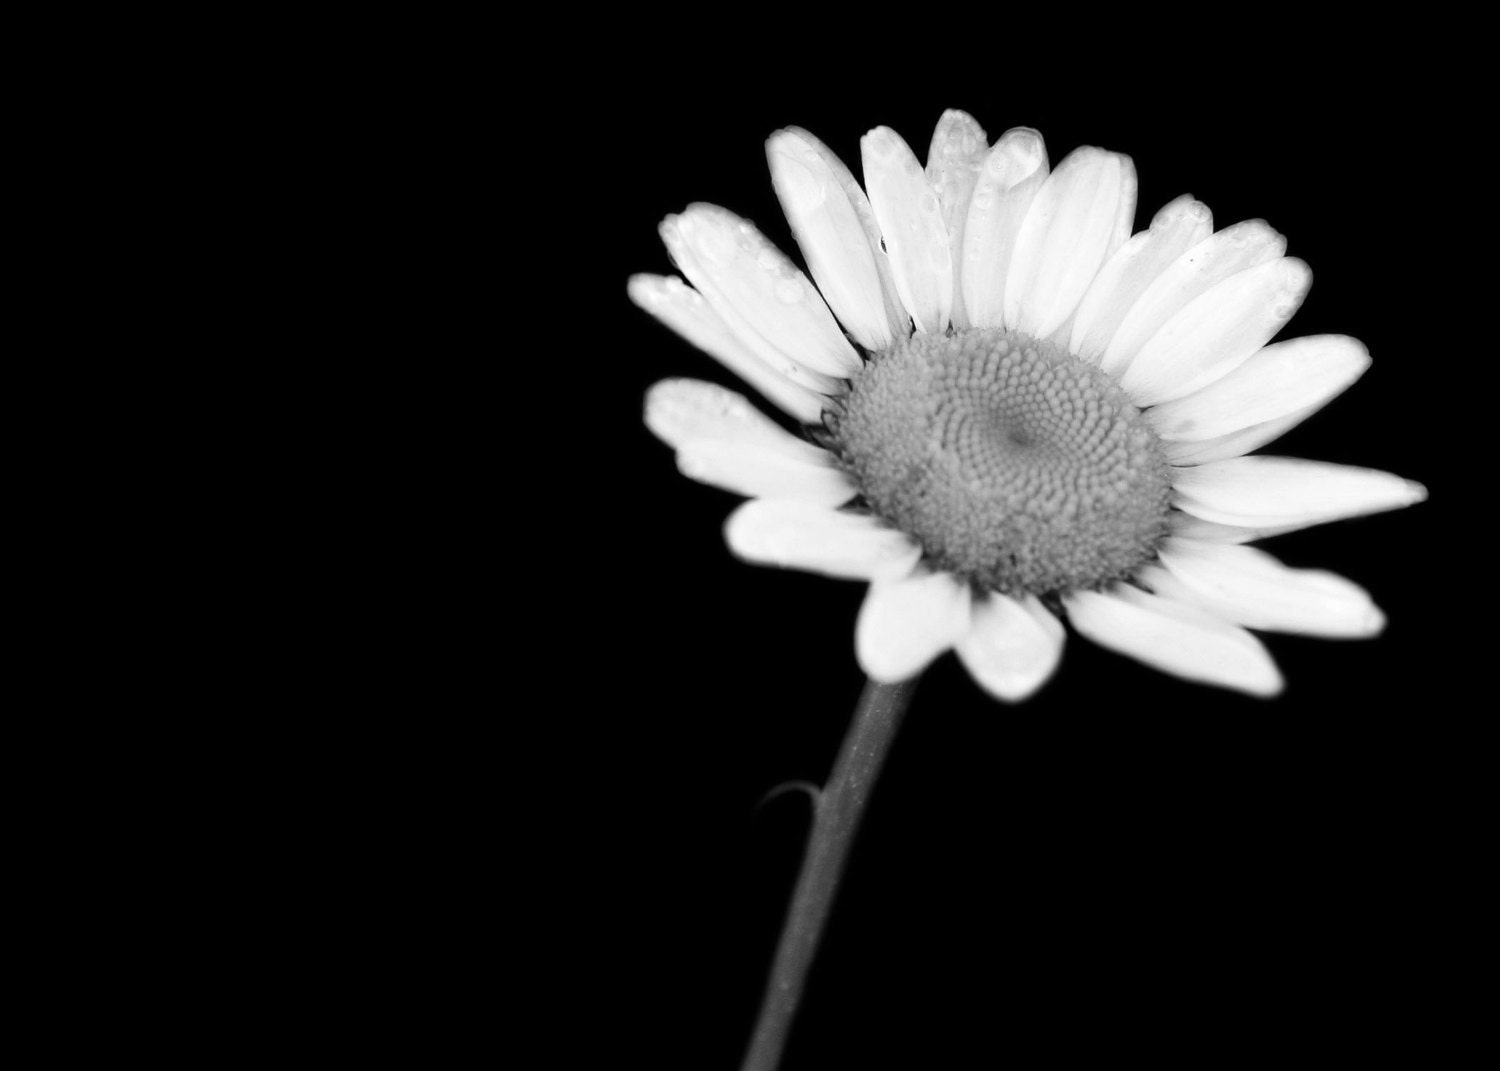 4x6 Black and White Daisy with a Black background